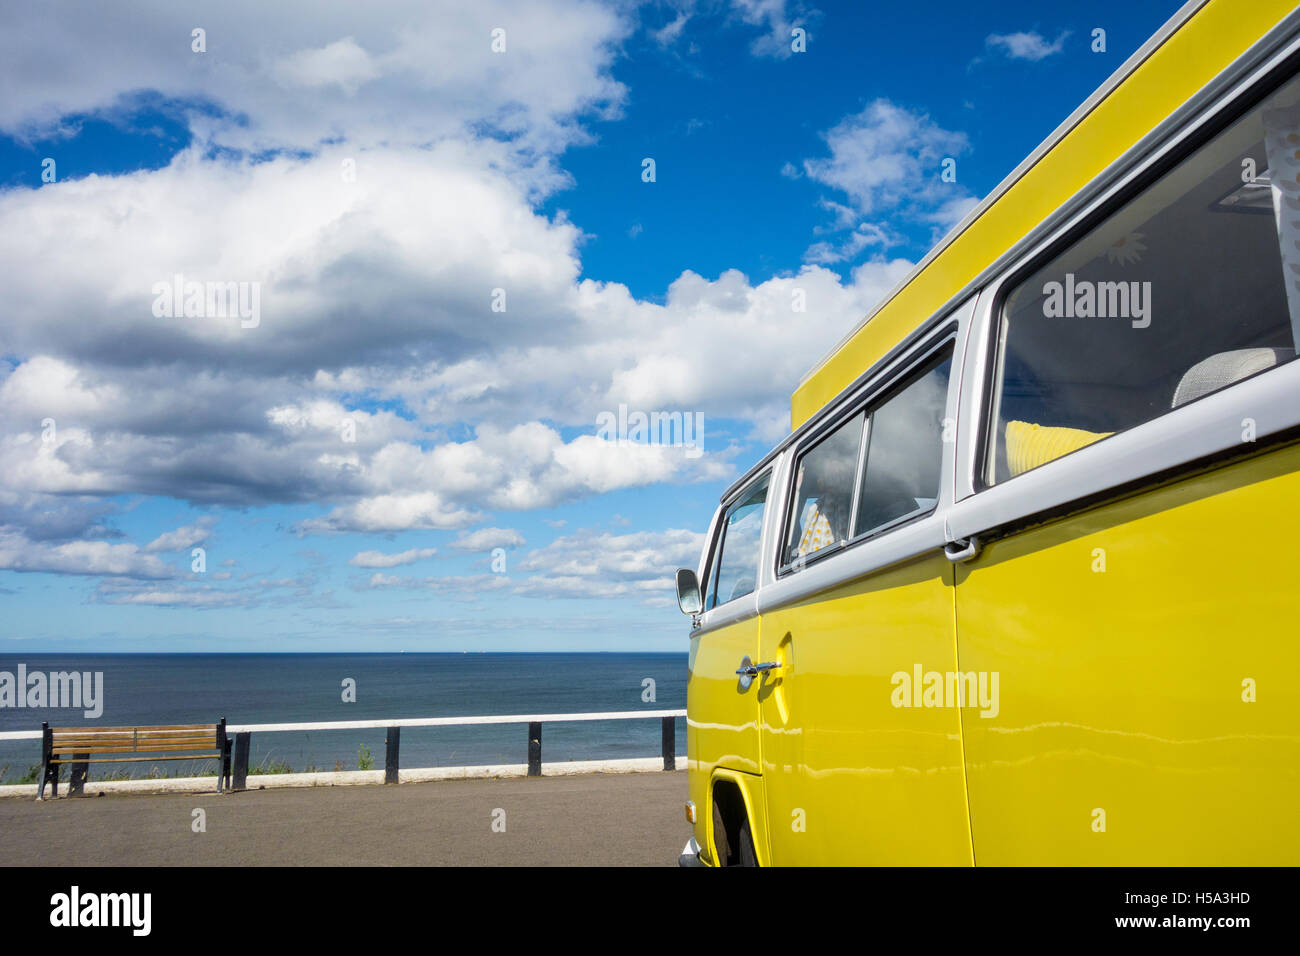 VW camper overlooking the ocean under a blue sky with cumulus clouds - Stock Image